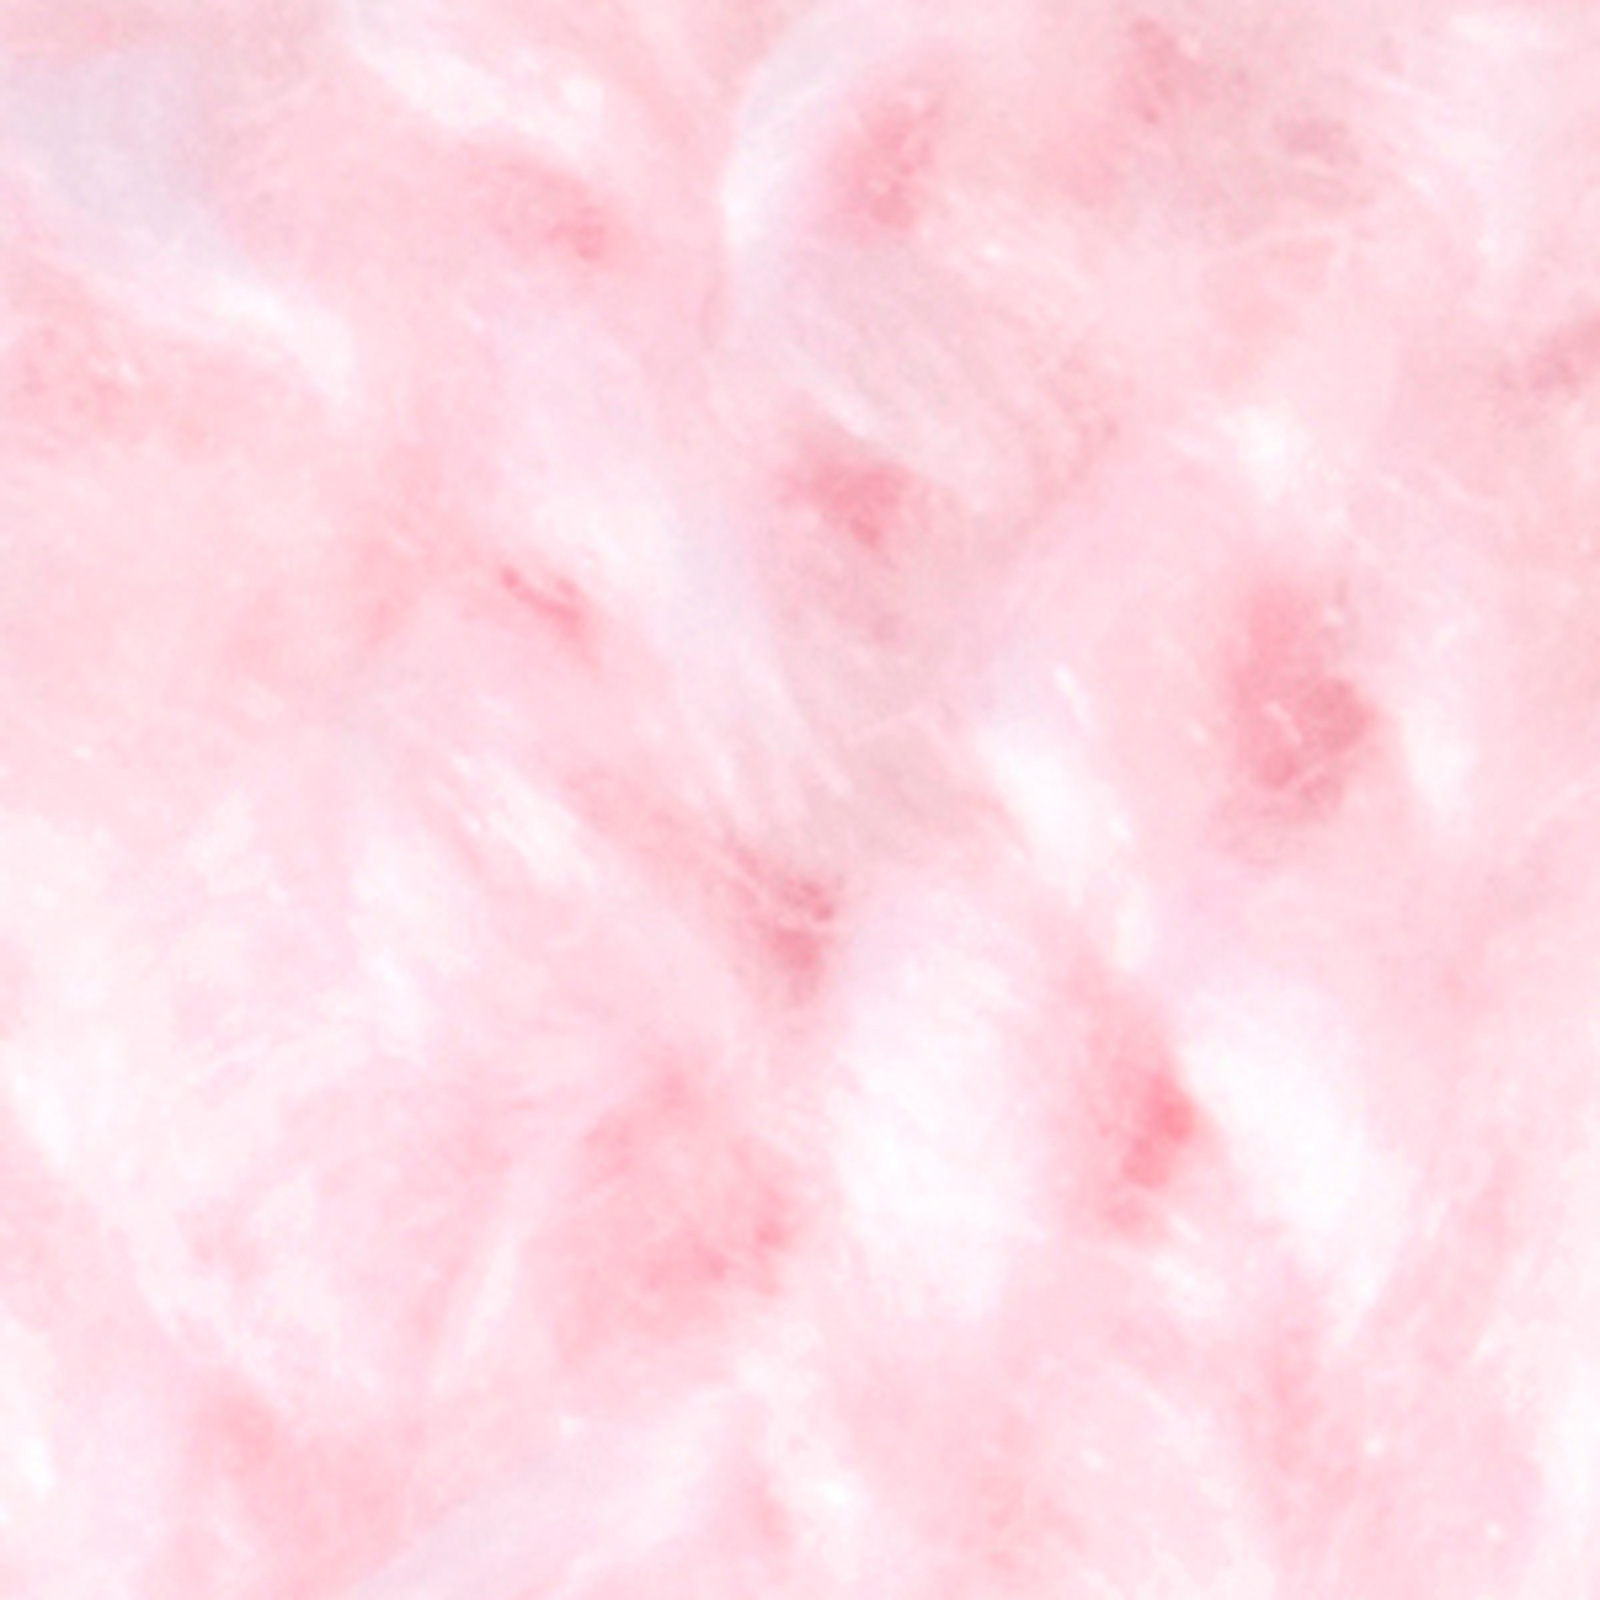 Red Heart Baby Clouds 9724 Pink Lemonade